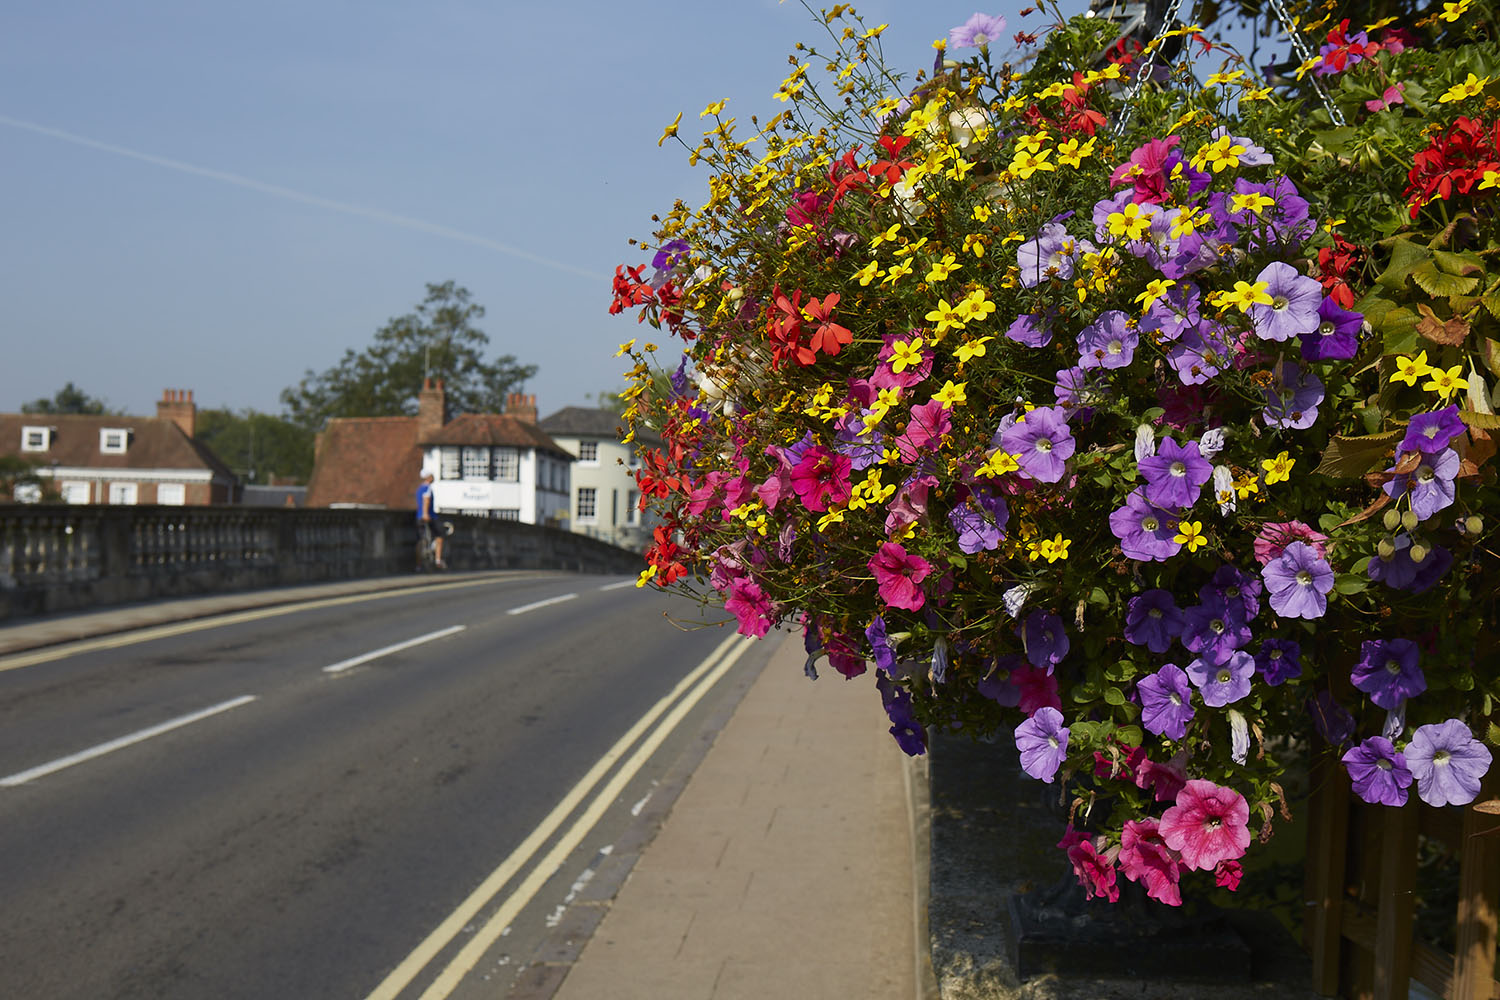 Henley Town Council - bright pink, purple and red flowers growing next to the road